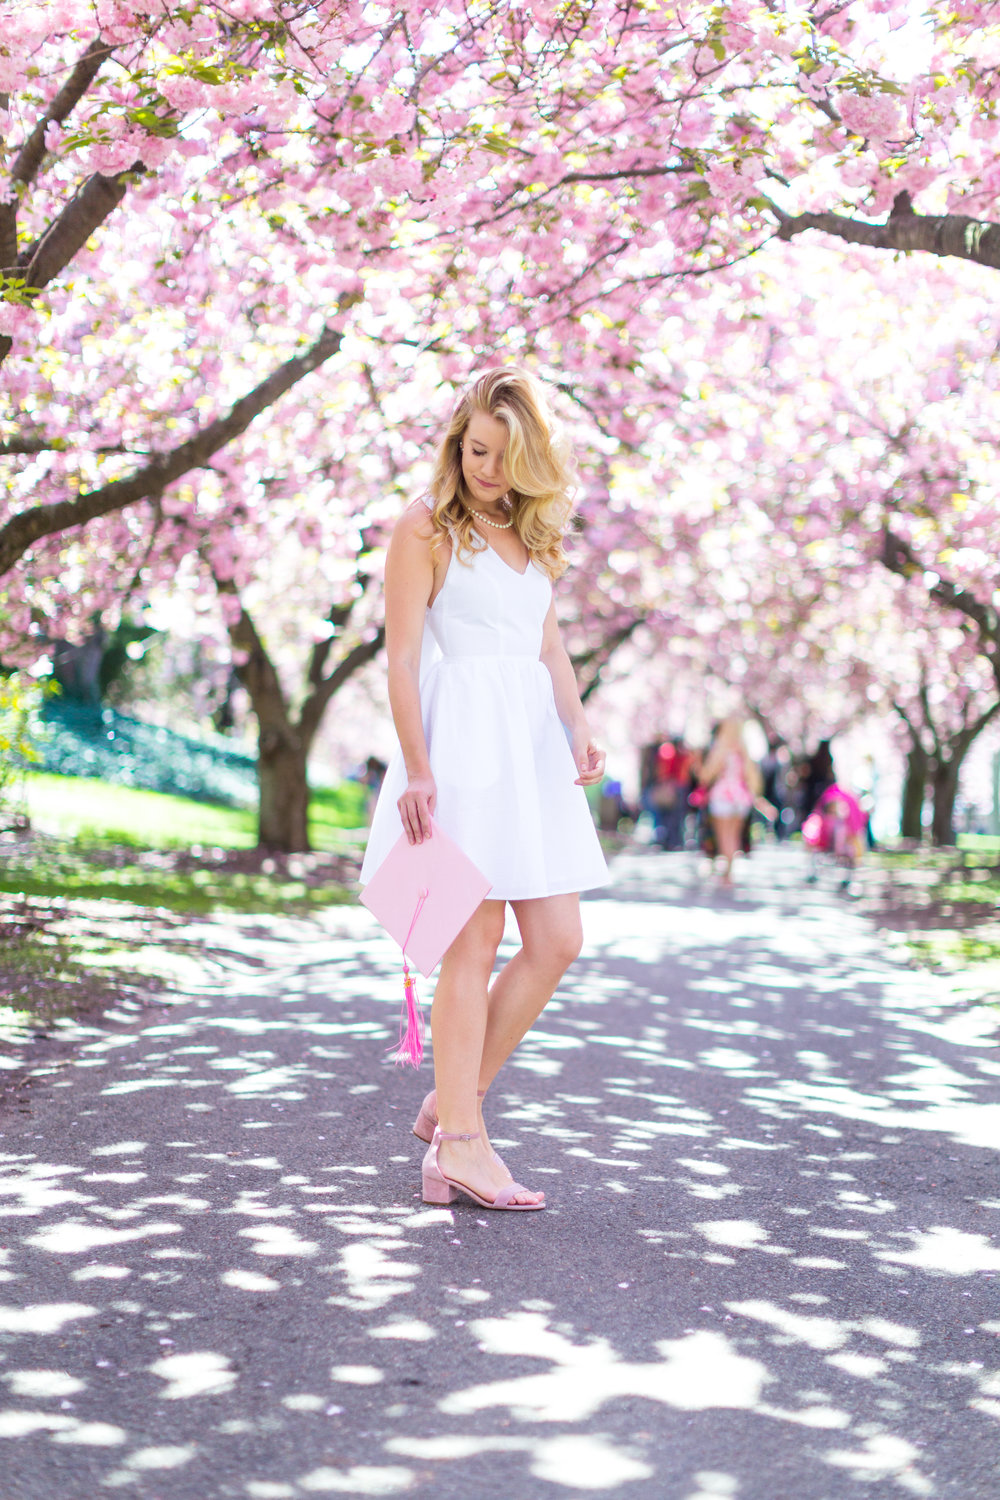 White Graduation Dress Spring Pink Cherry Blossoms NYC-3.jpg